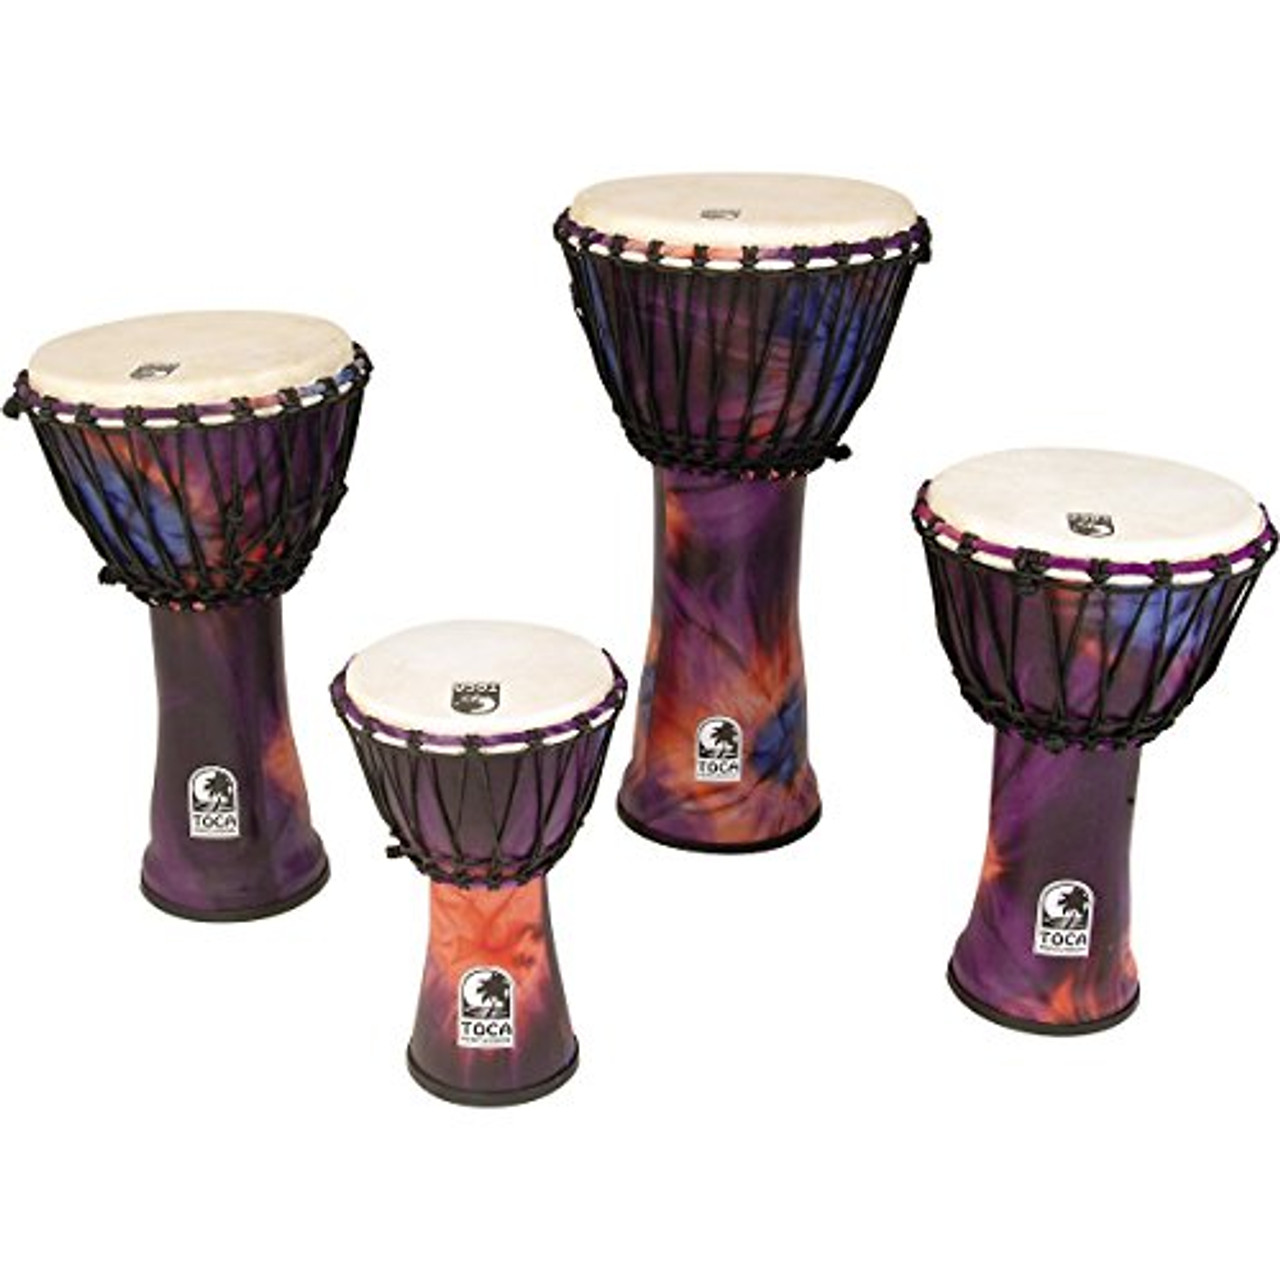 Toca a Synergy Freestyle Rope Tuned Djembe 9 In Purple